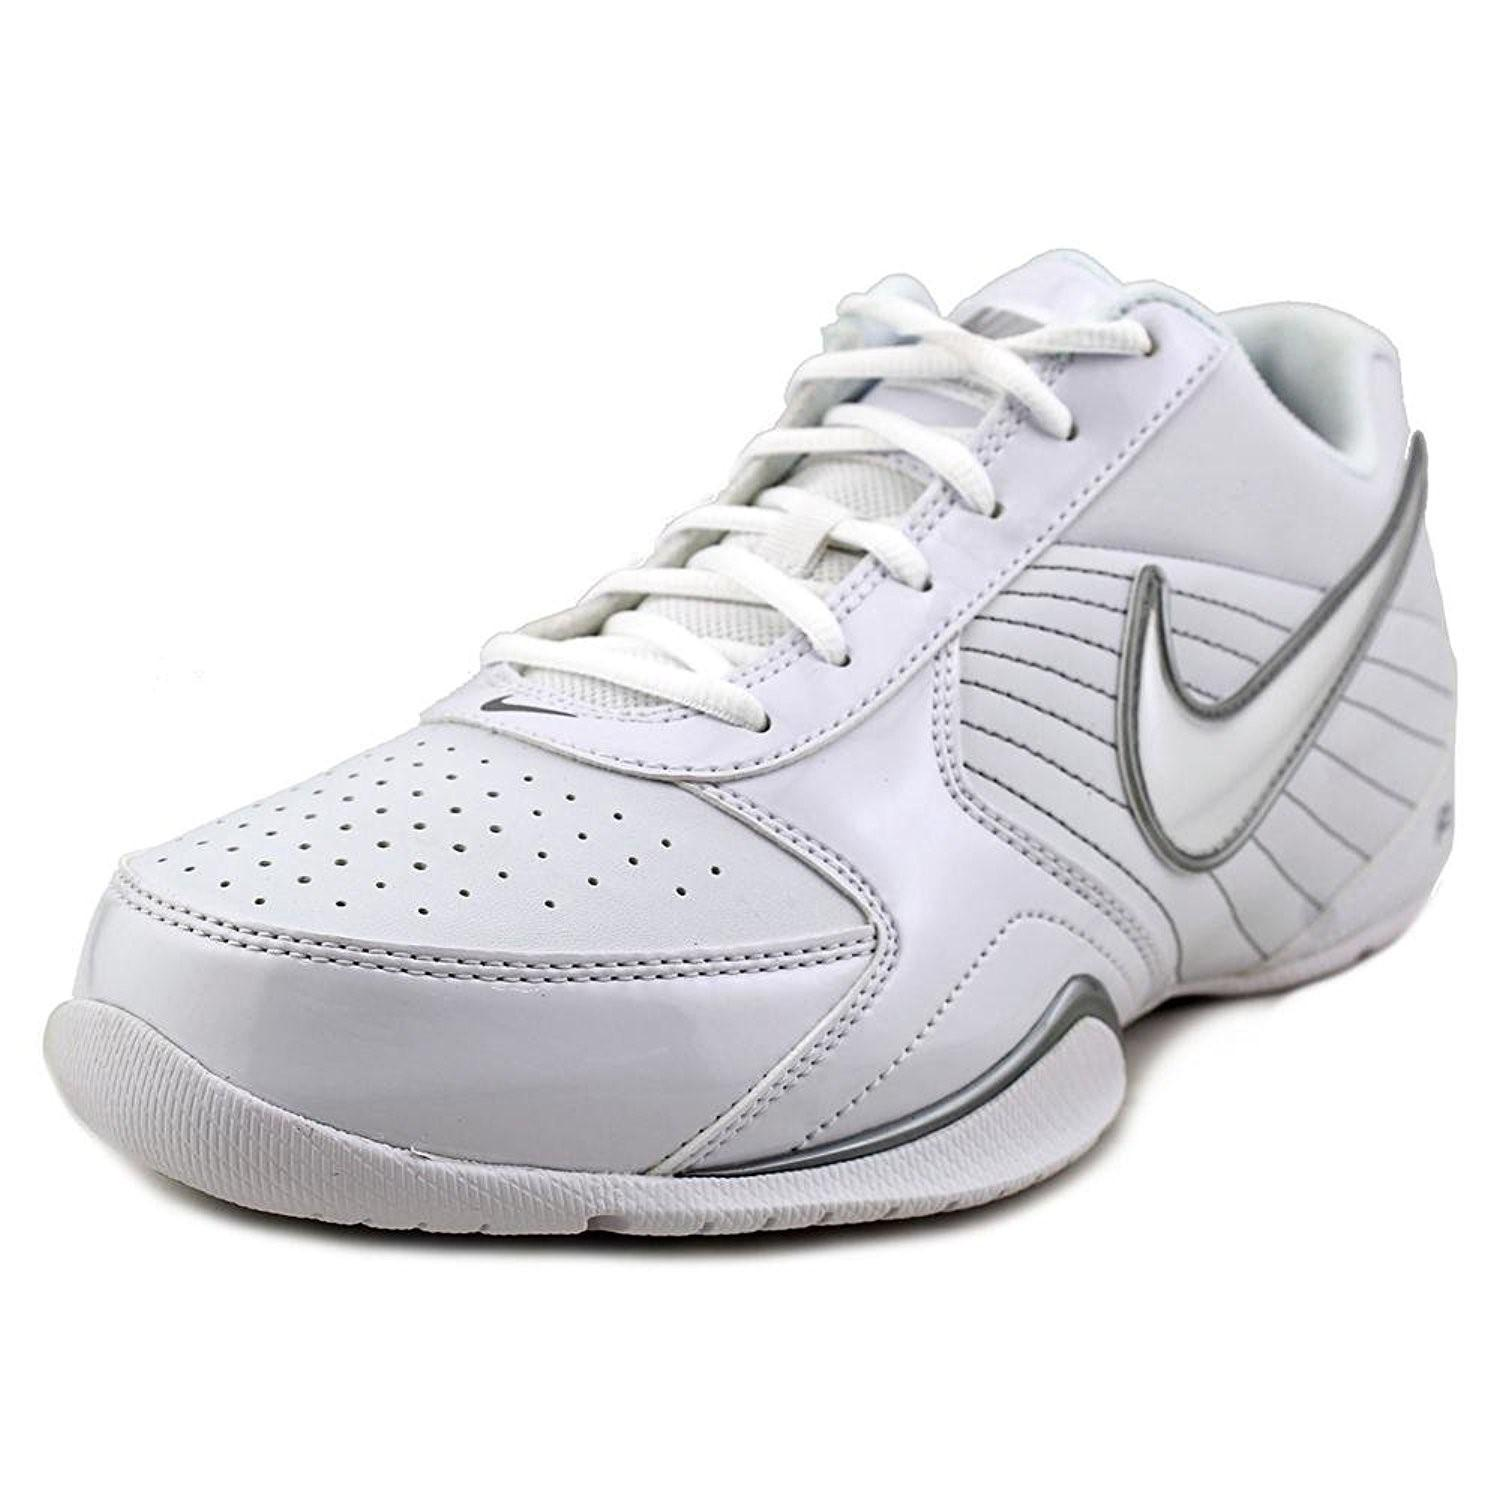 3e7ed3f21a2 Lyst - Nike Air Baseline Low Men Round Toe Leather Basketball Shoe ...